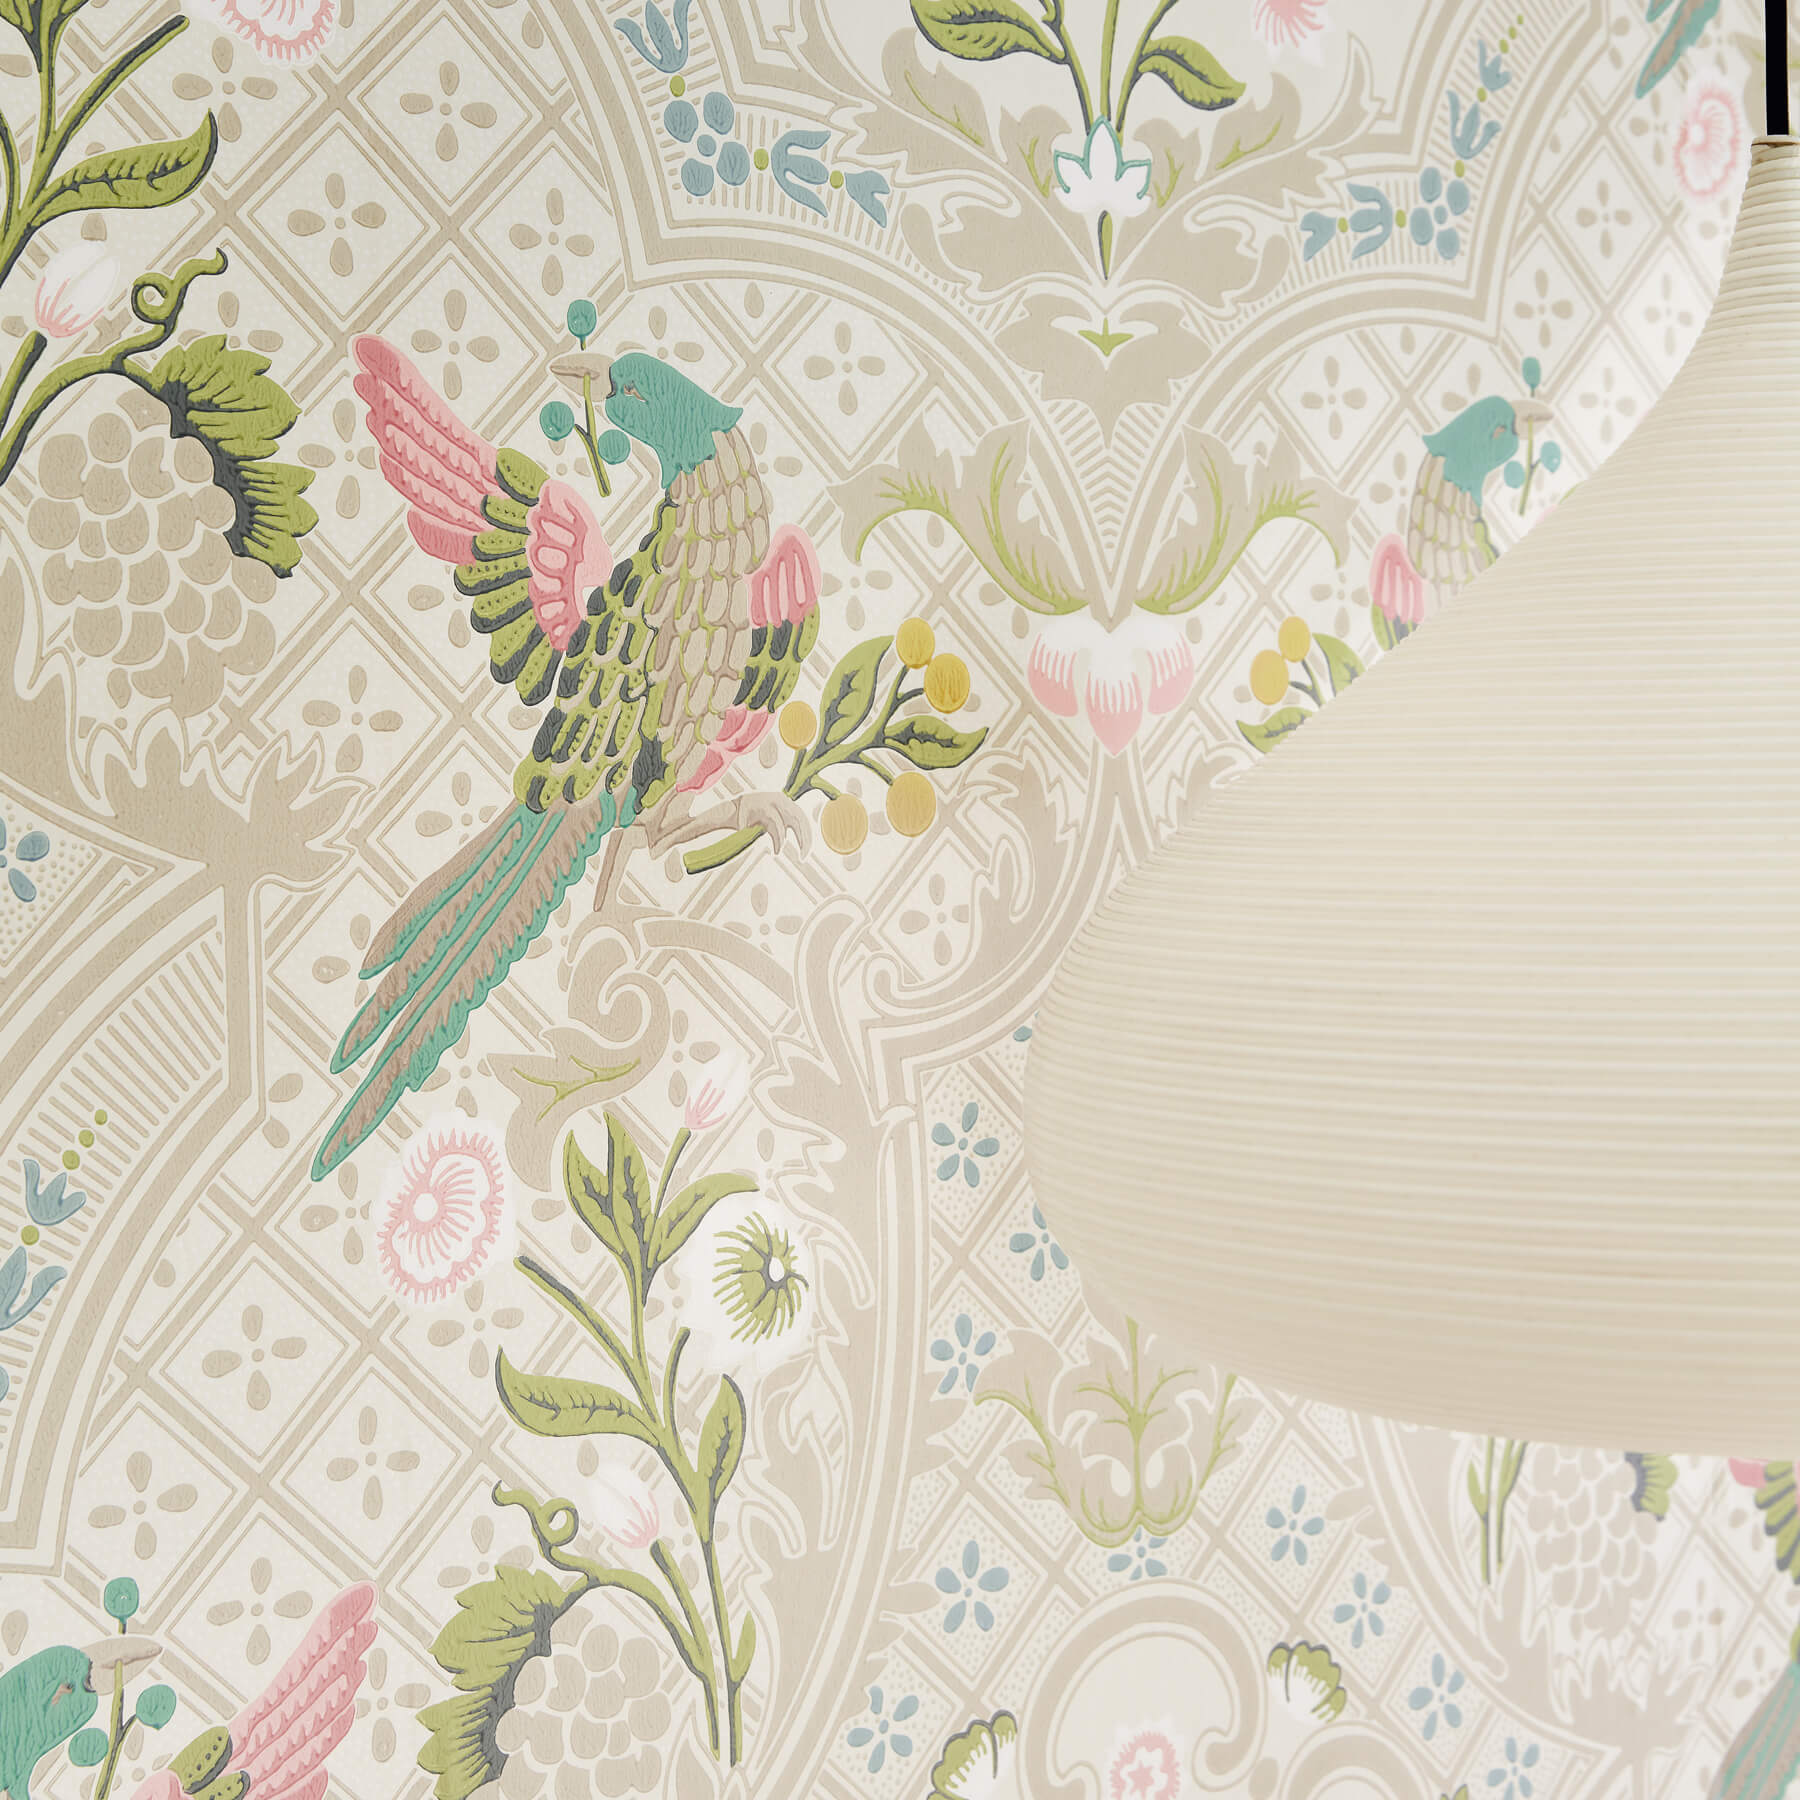 Papier peint Brodsworth Consort - Collection London Wallpapers V de Little Greene AMB